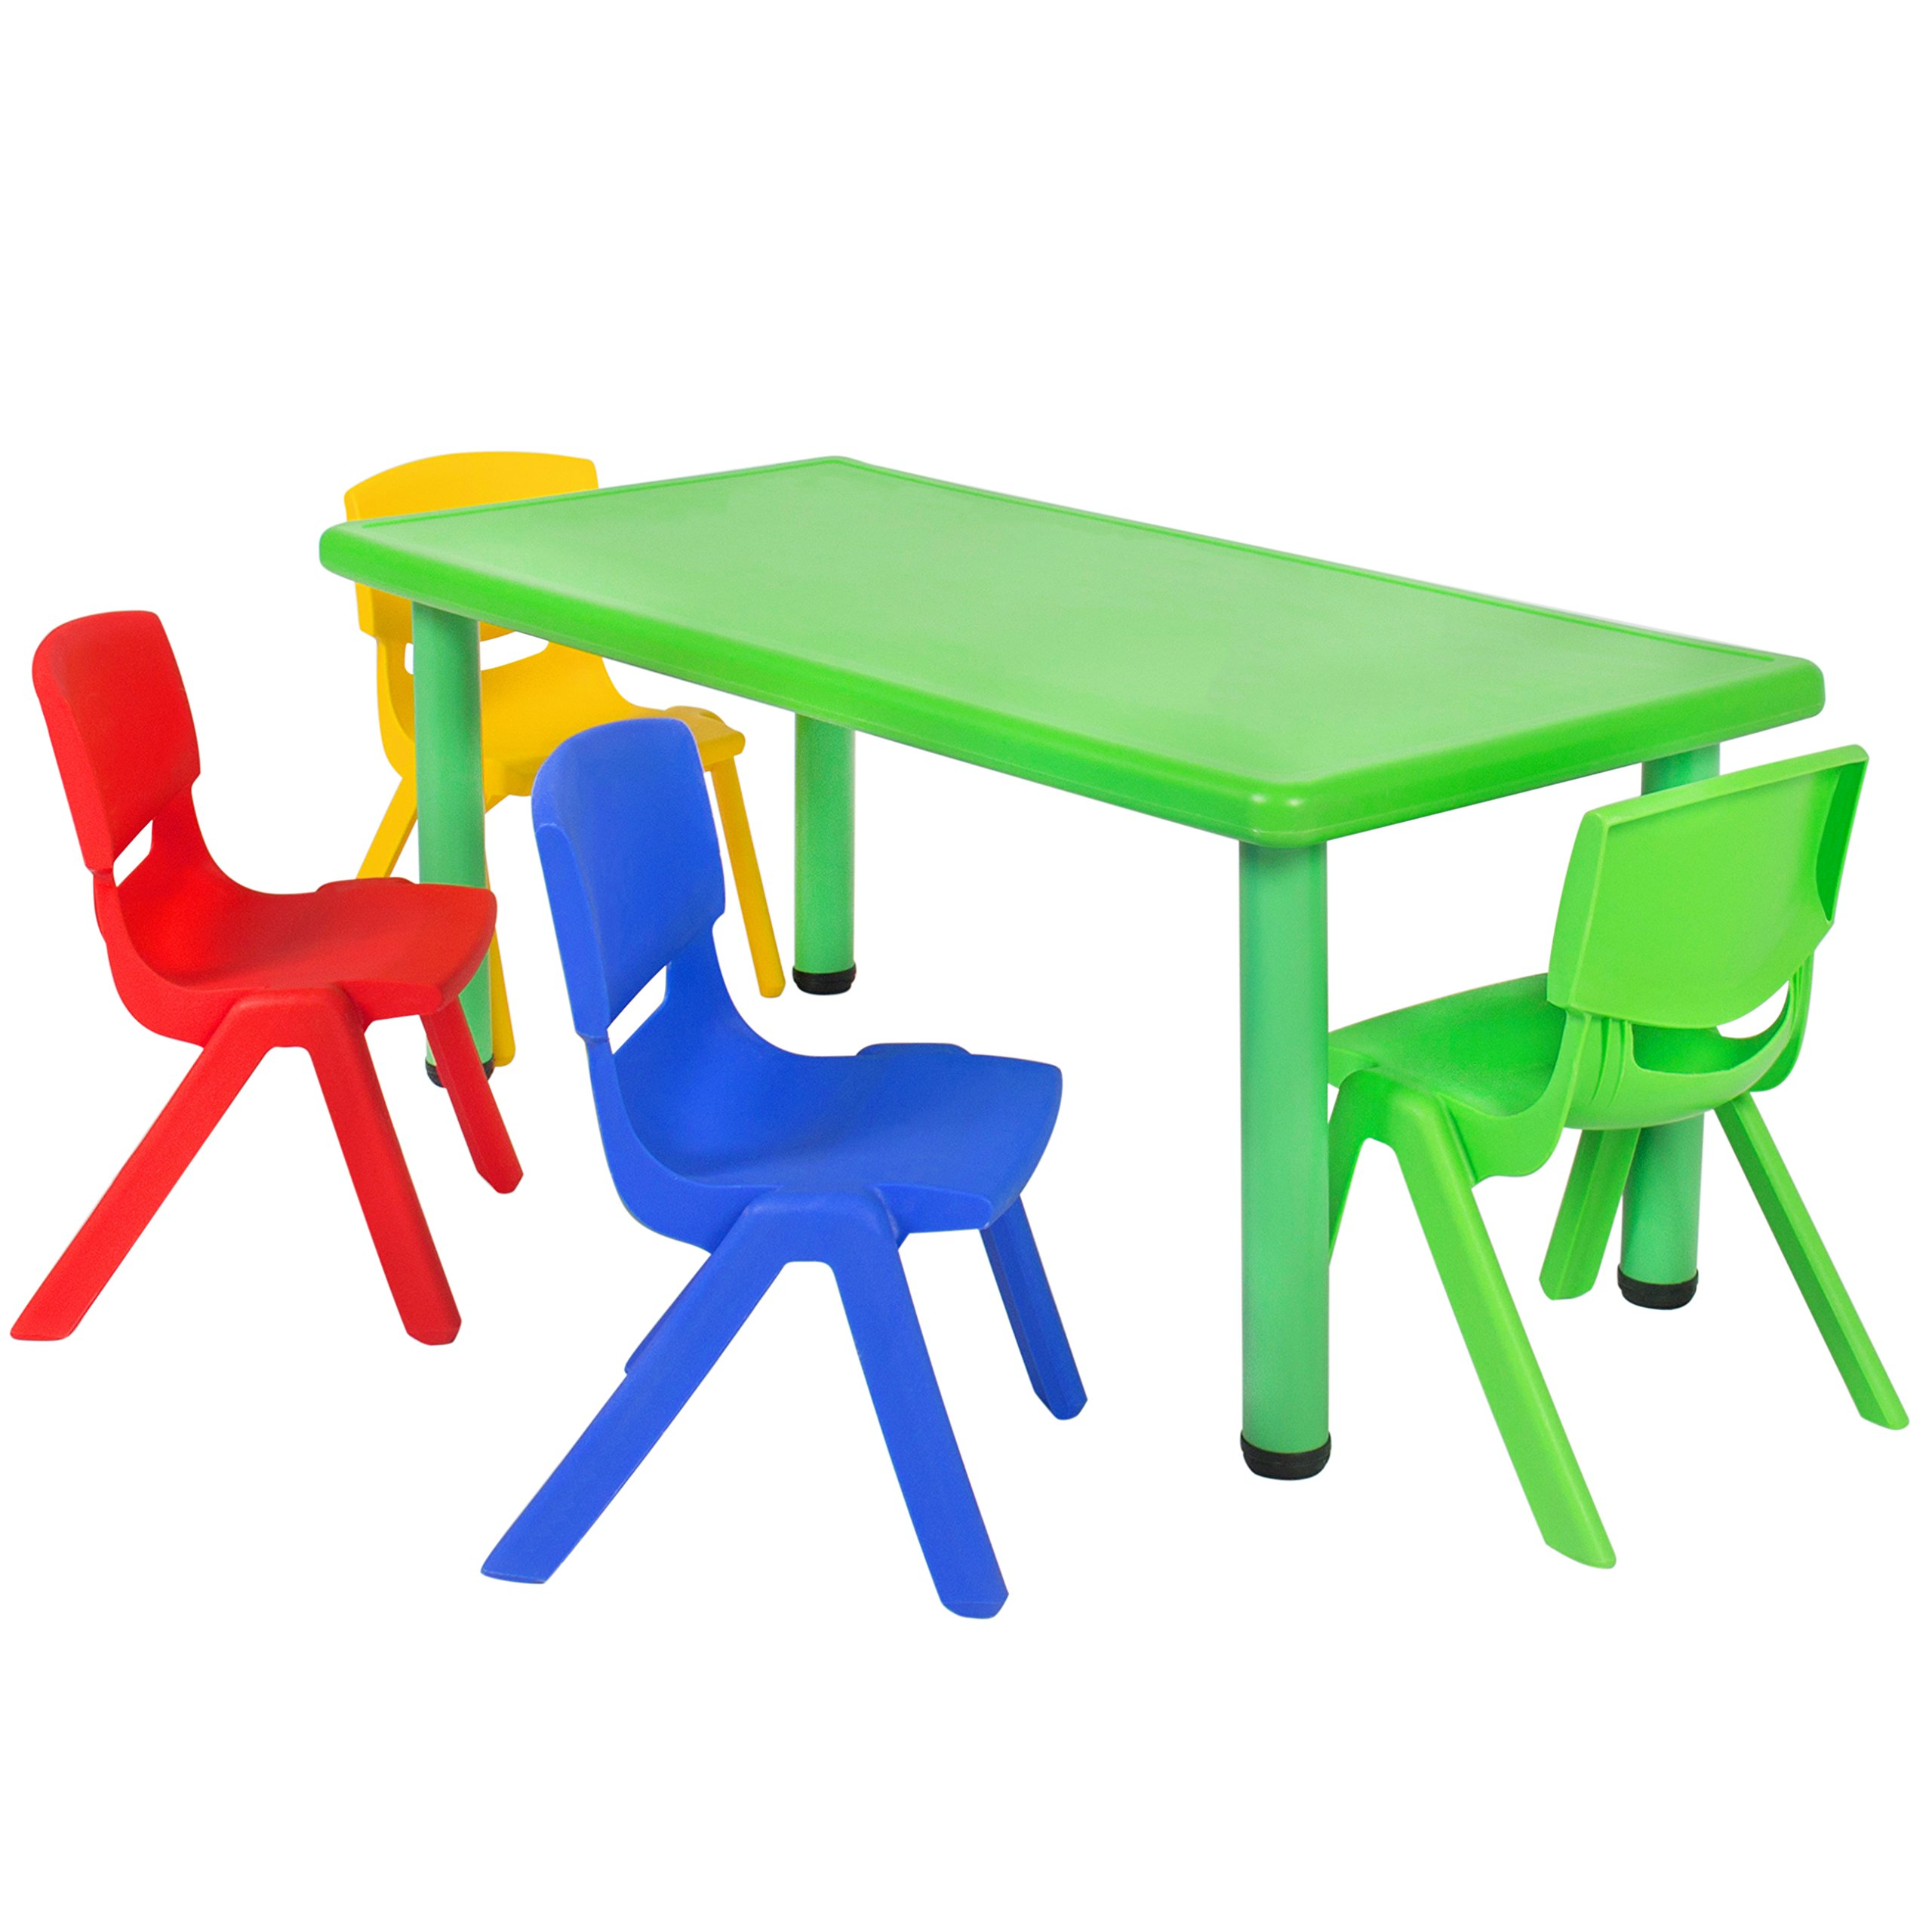 Best Choice Products Kids 5-Piece Plastic Activity Table Set with 4 Chairs, Multicolor by Best Choice Products